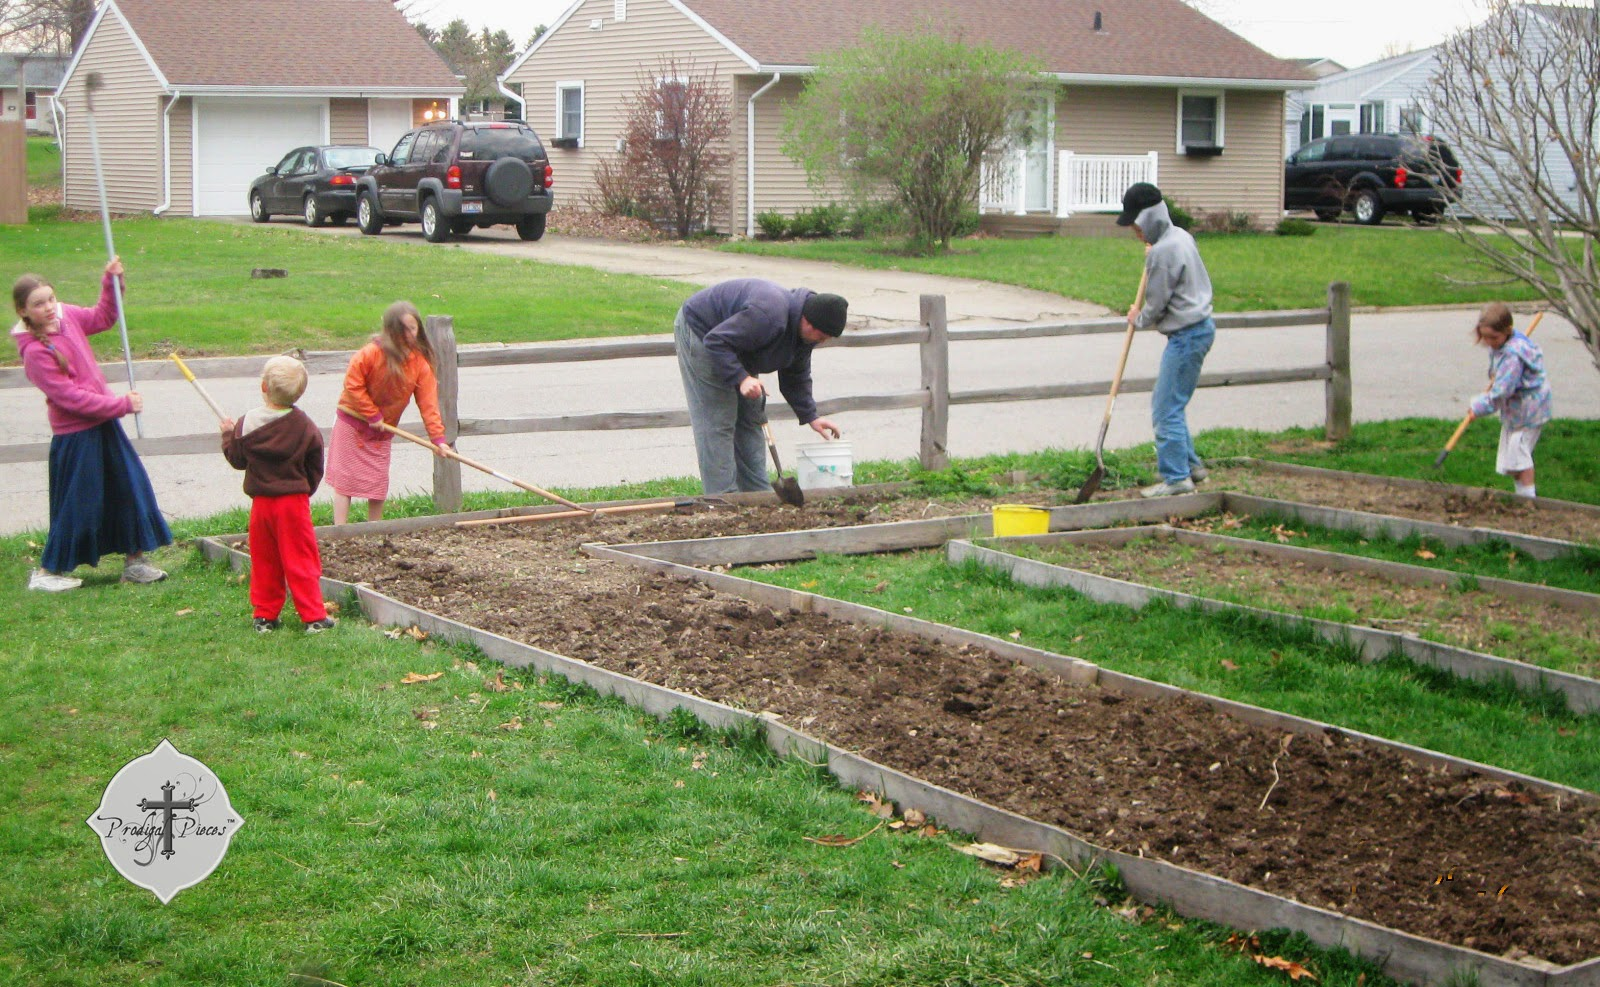 Front Yard City Raised Beds Garden via www.prodigalpieces.com